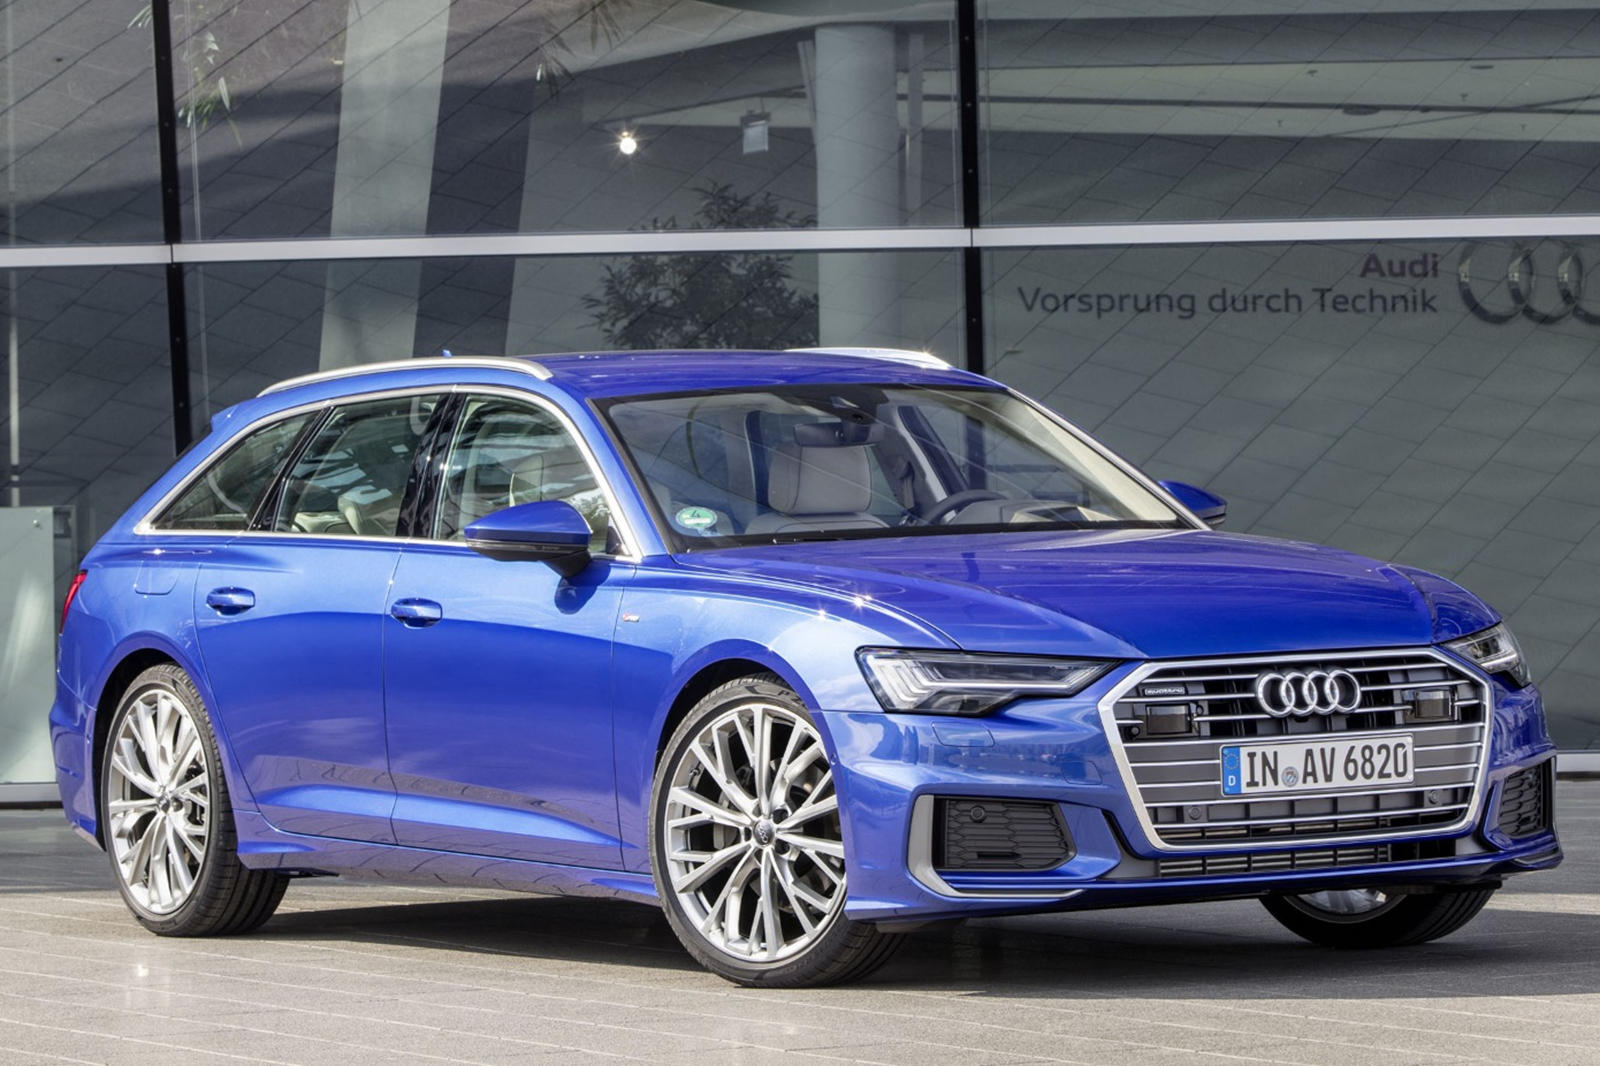 2019 Audi A6 Avant Is Another Wagon We Probably Won't Get In America | CarBuzz